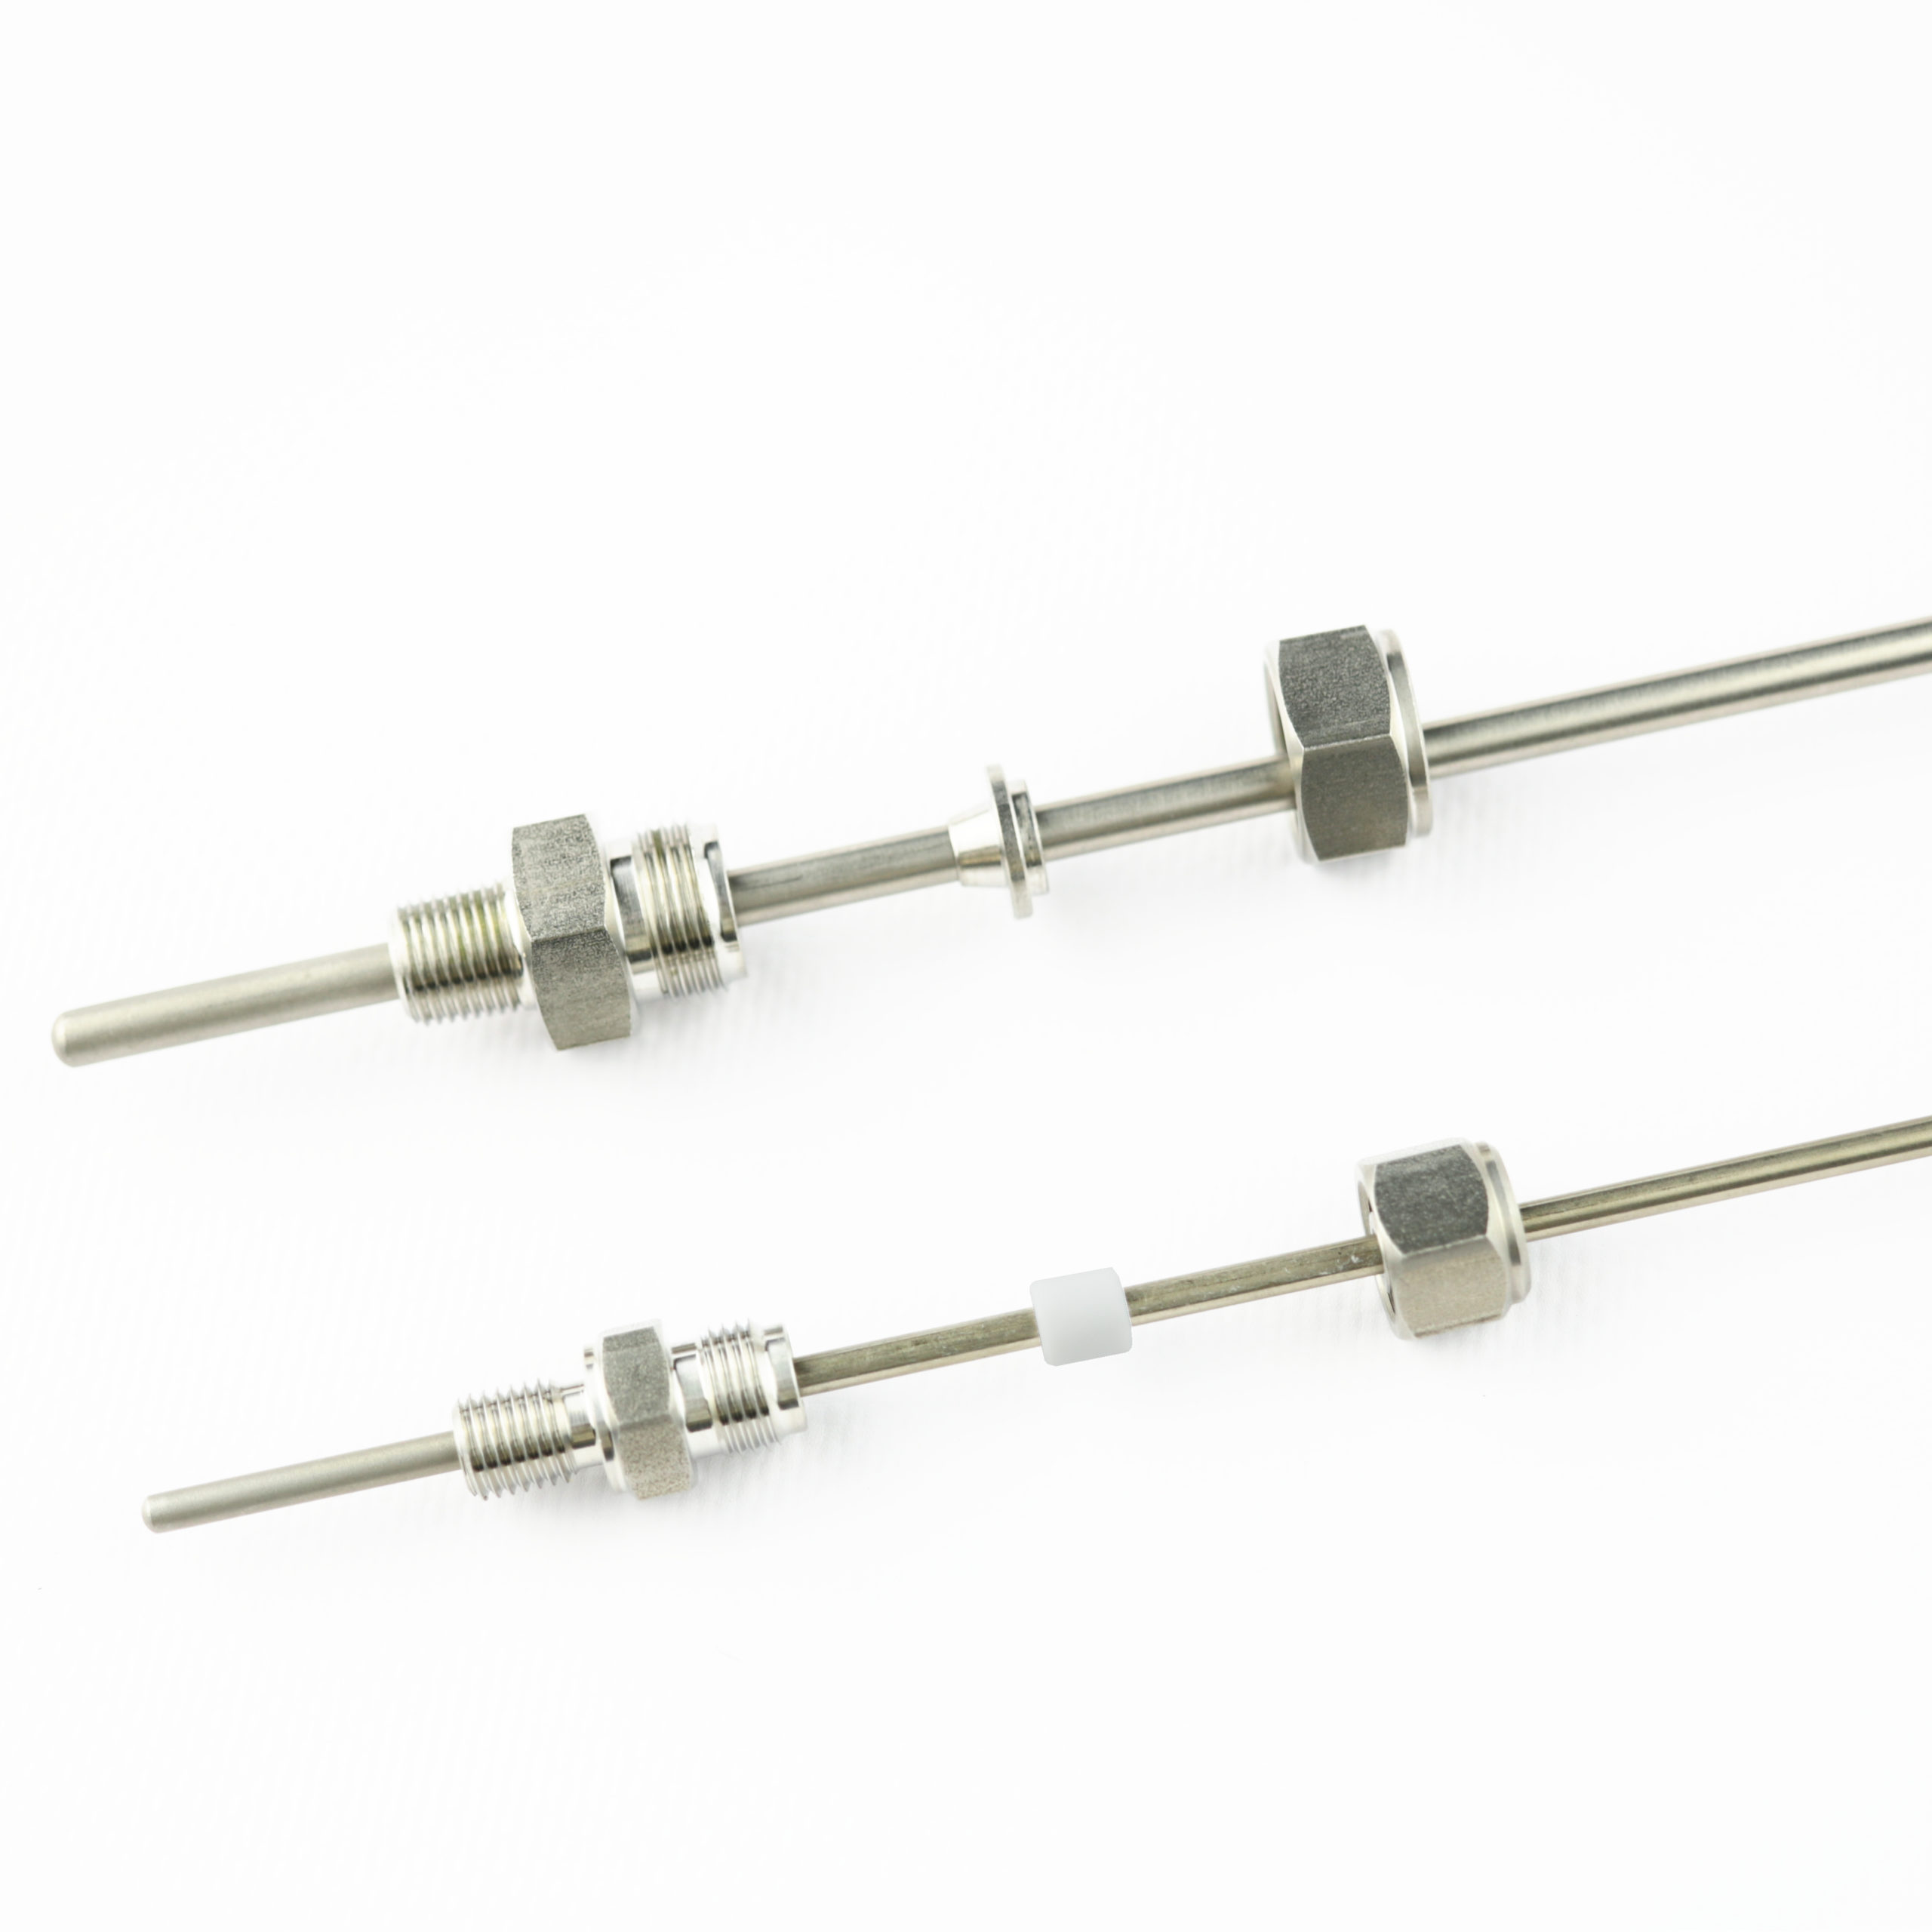 Two compression fittings next to each other. One with a metallic and one with a plastic ferrule or compression ring.